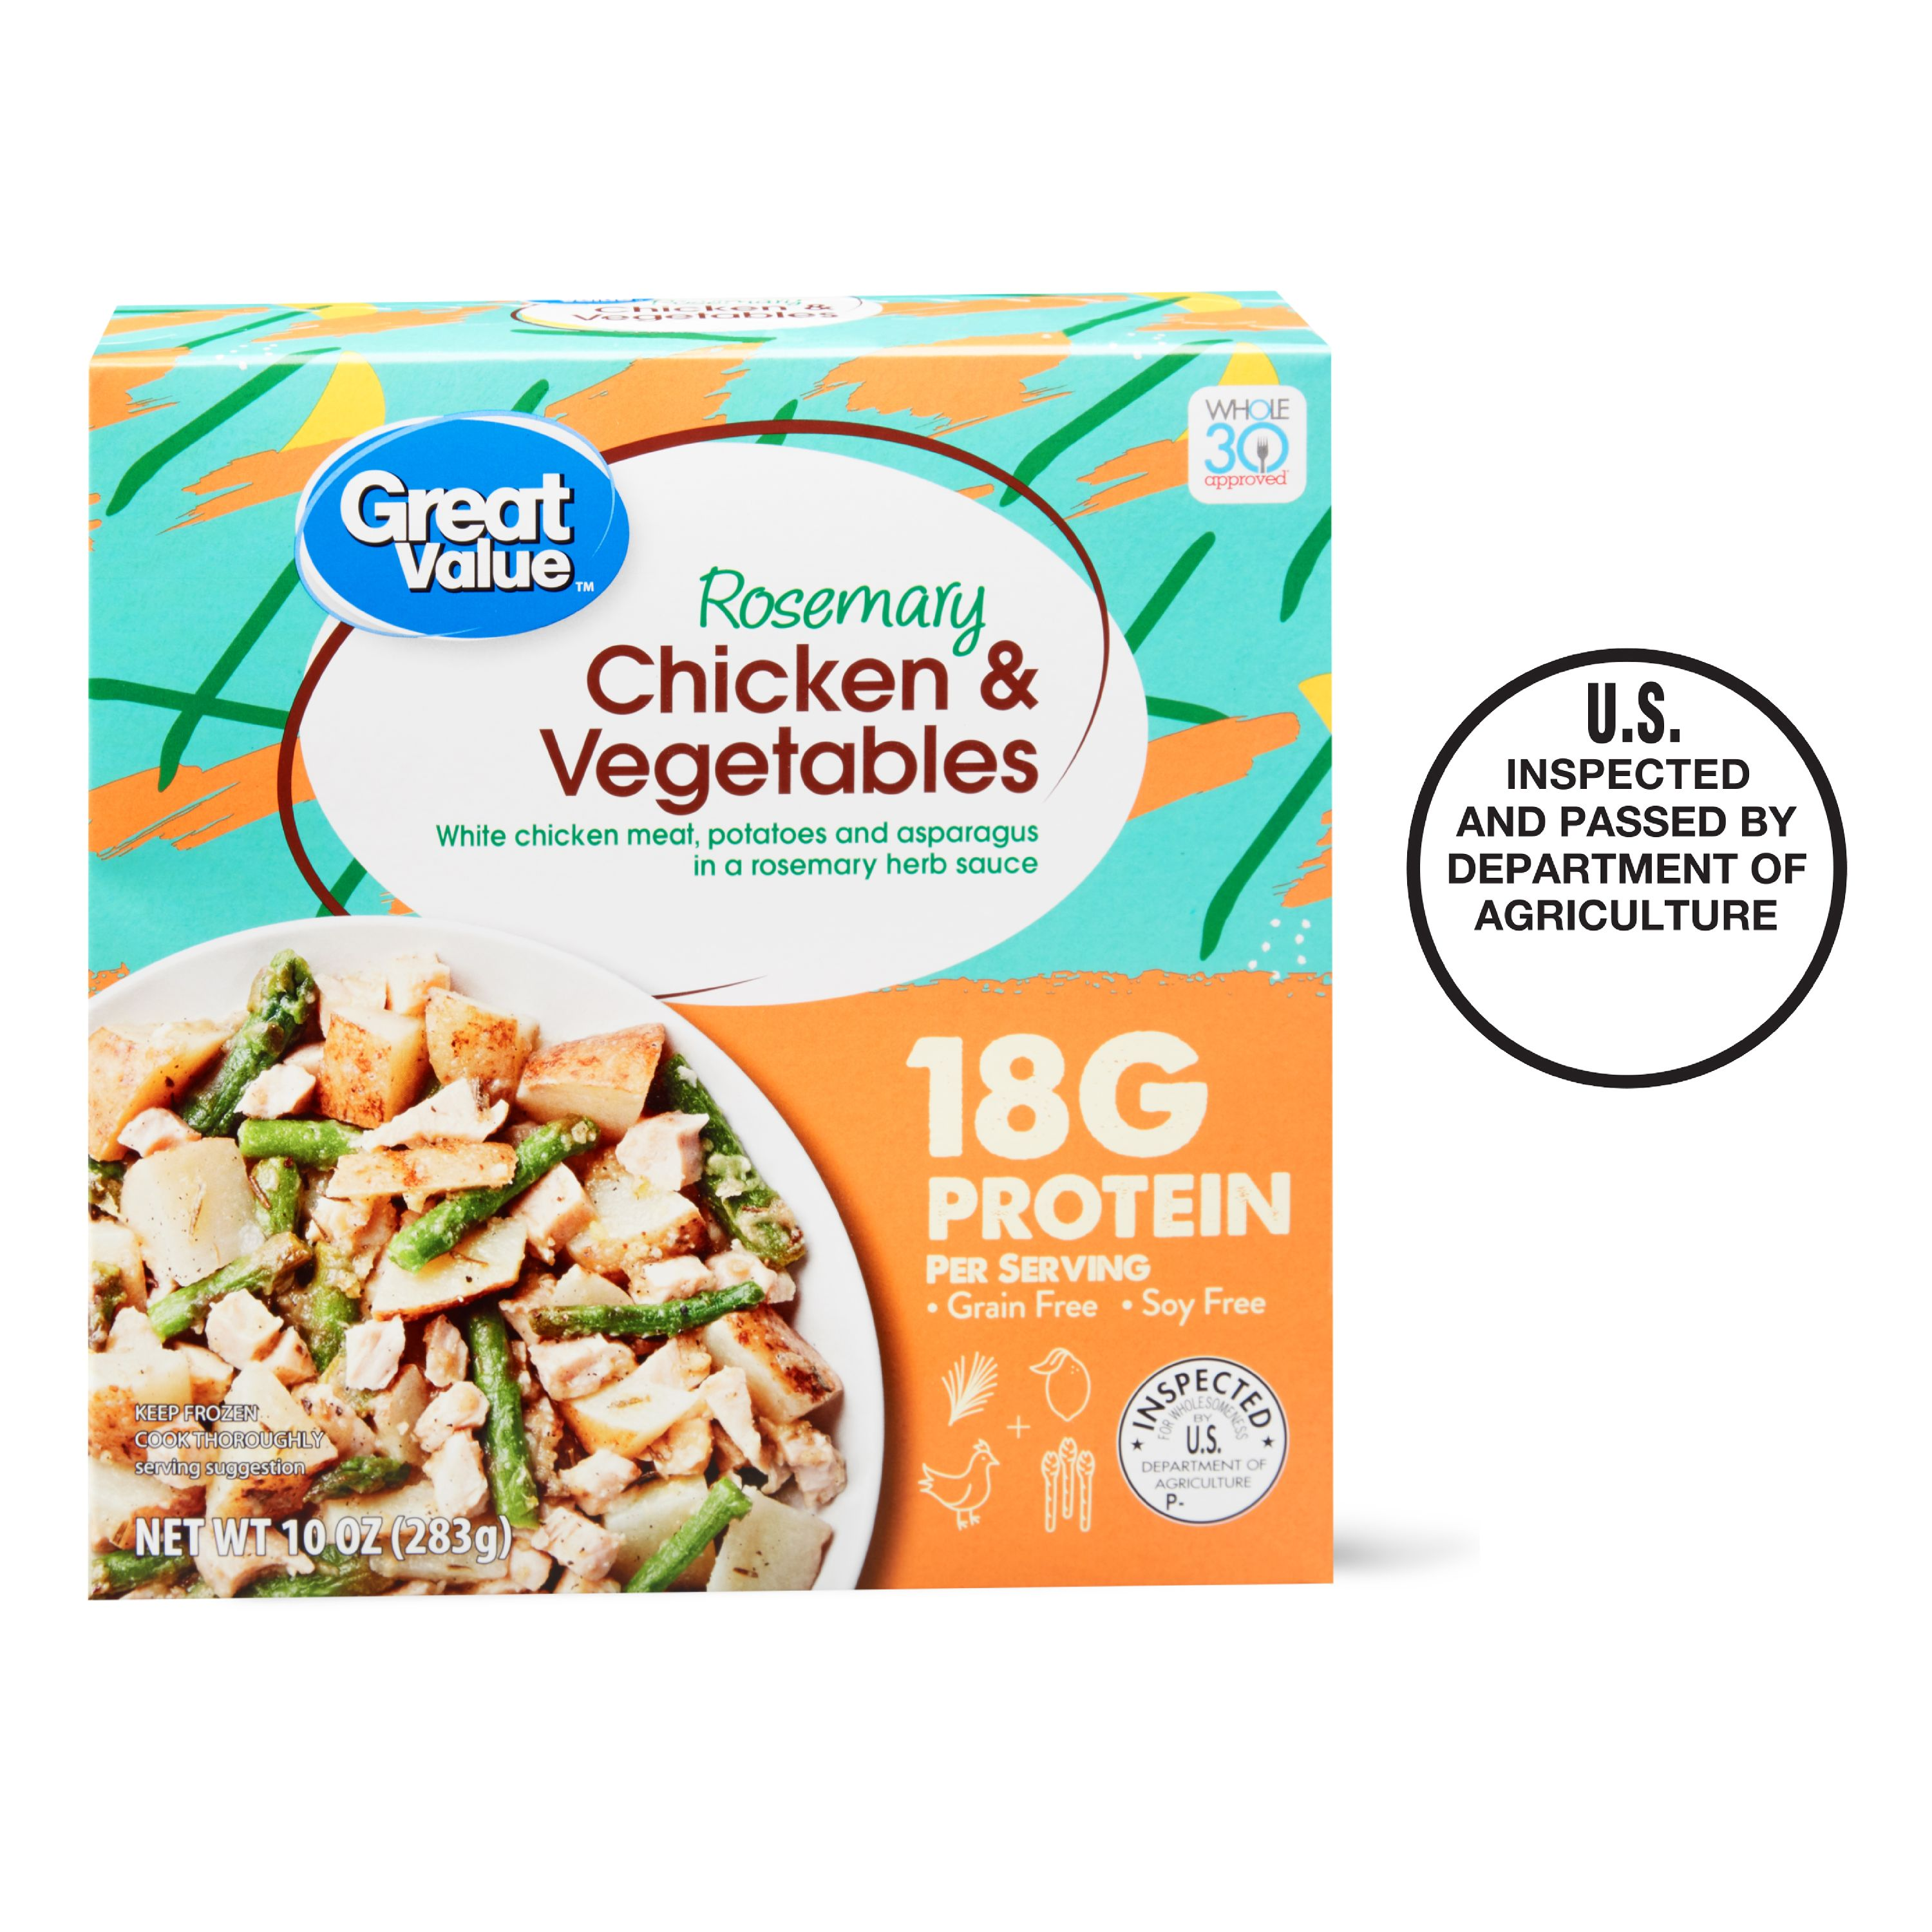 Great Value Rosemary Chicken & Vegetables Whole30® Meal, 10 oz